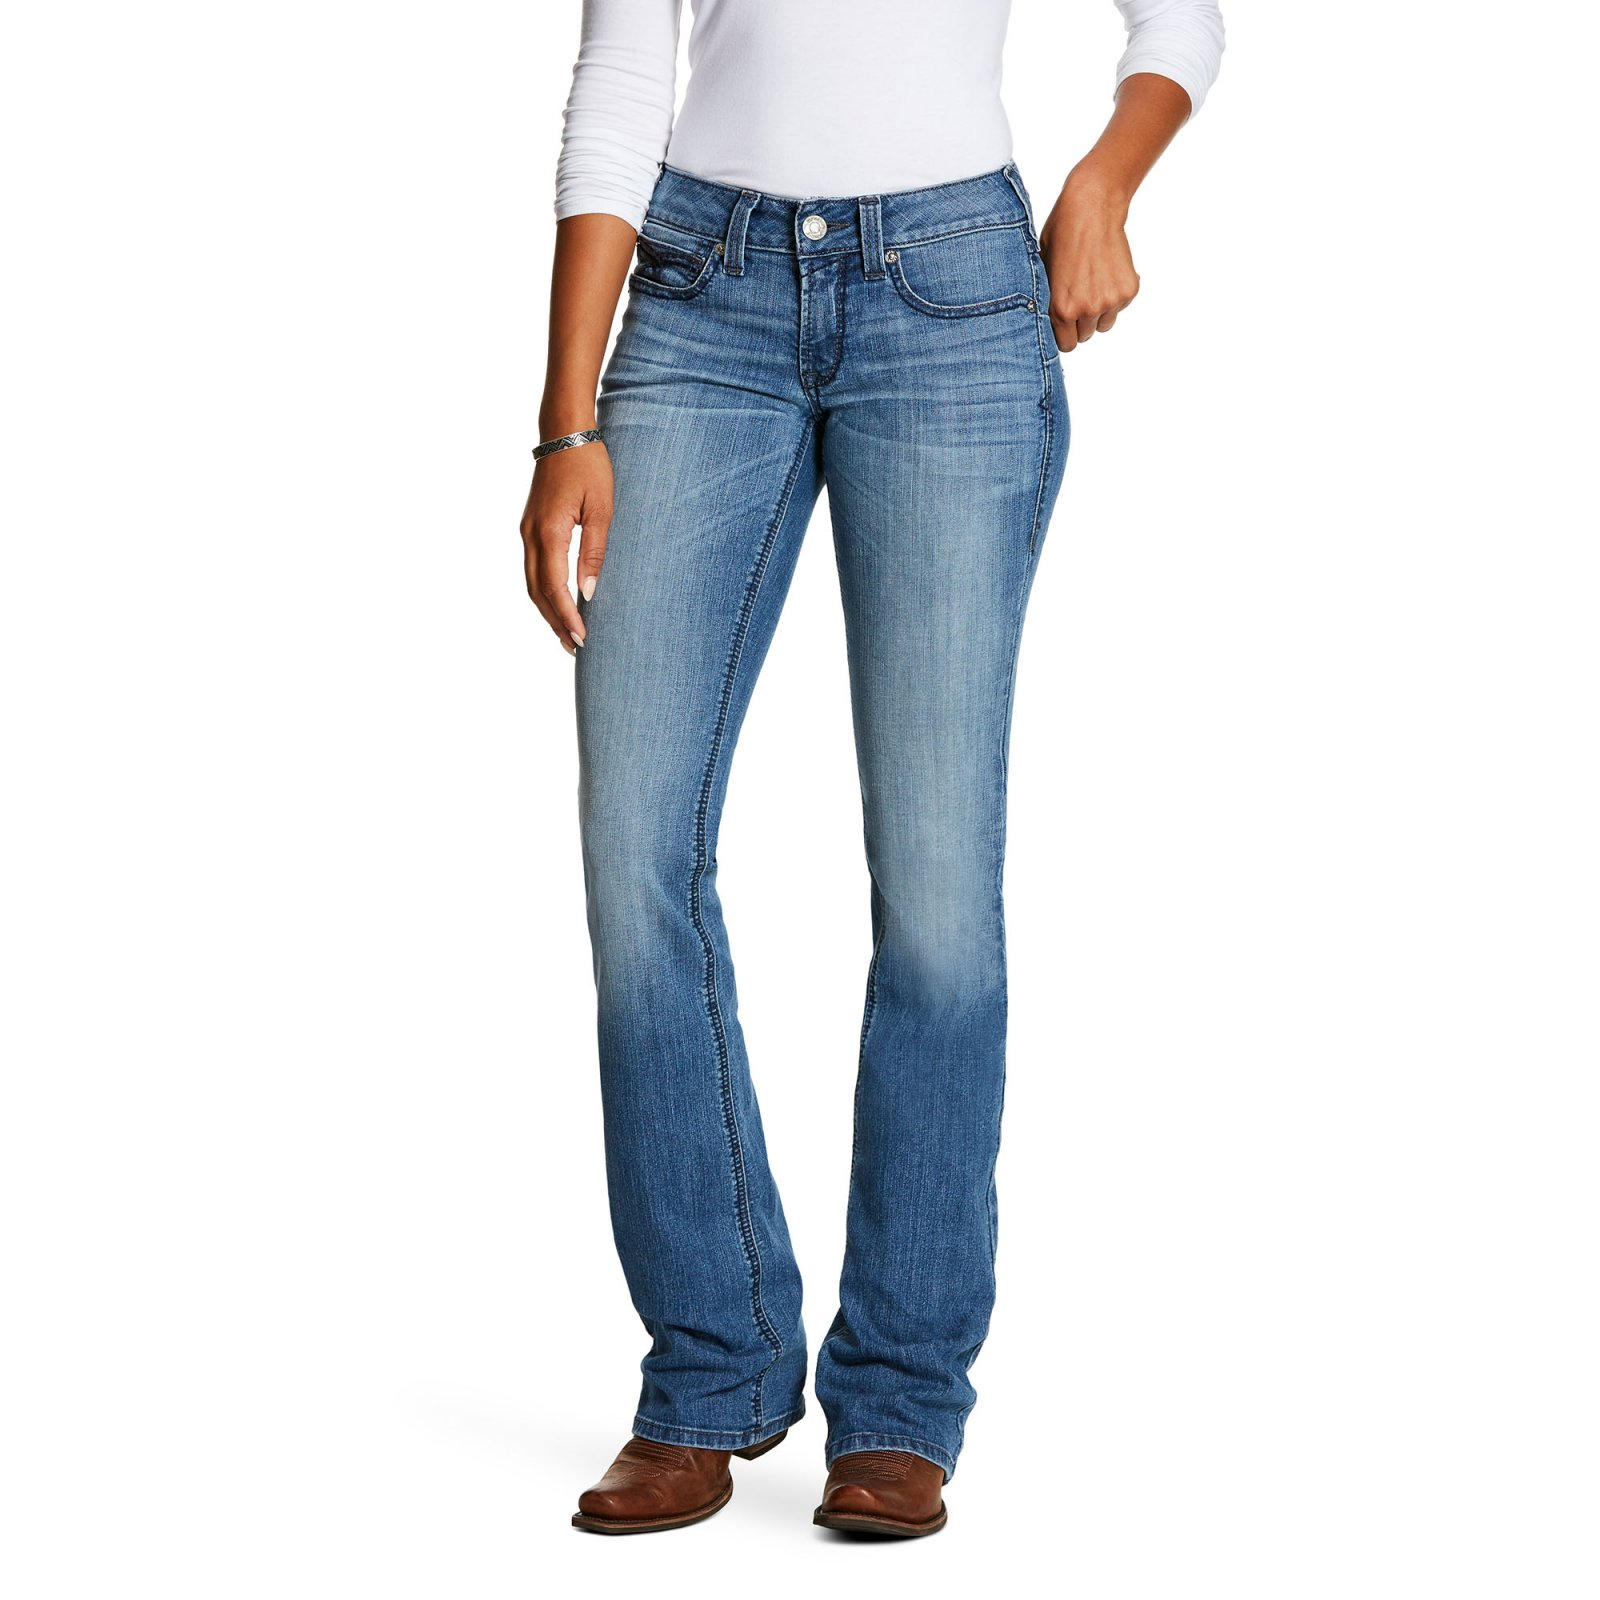 REAL Mid-Rise Shawna Boot Jean from Ariat